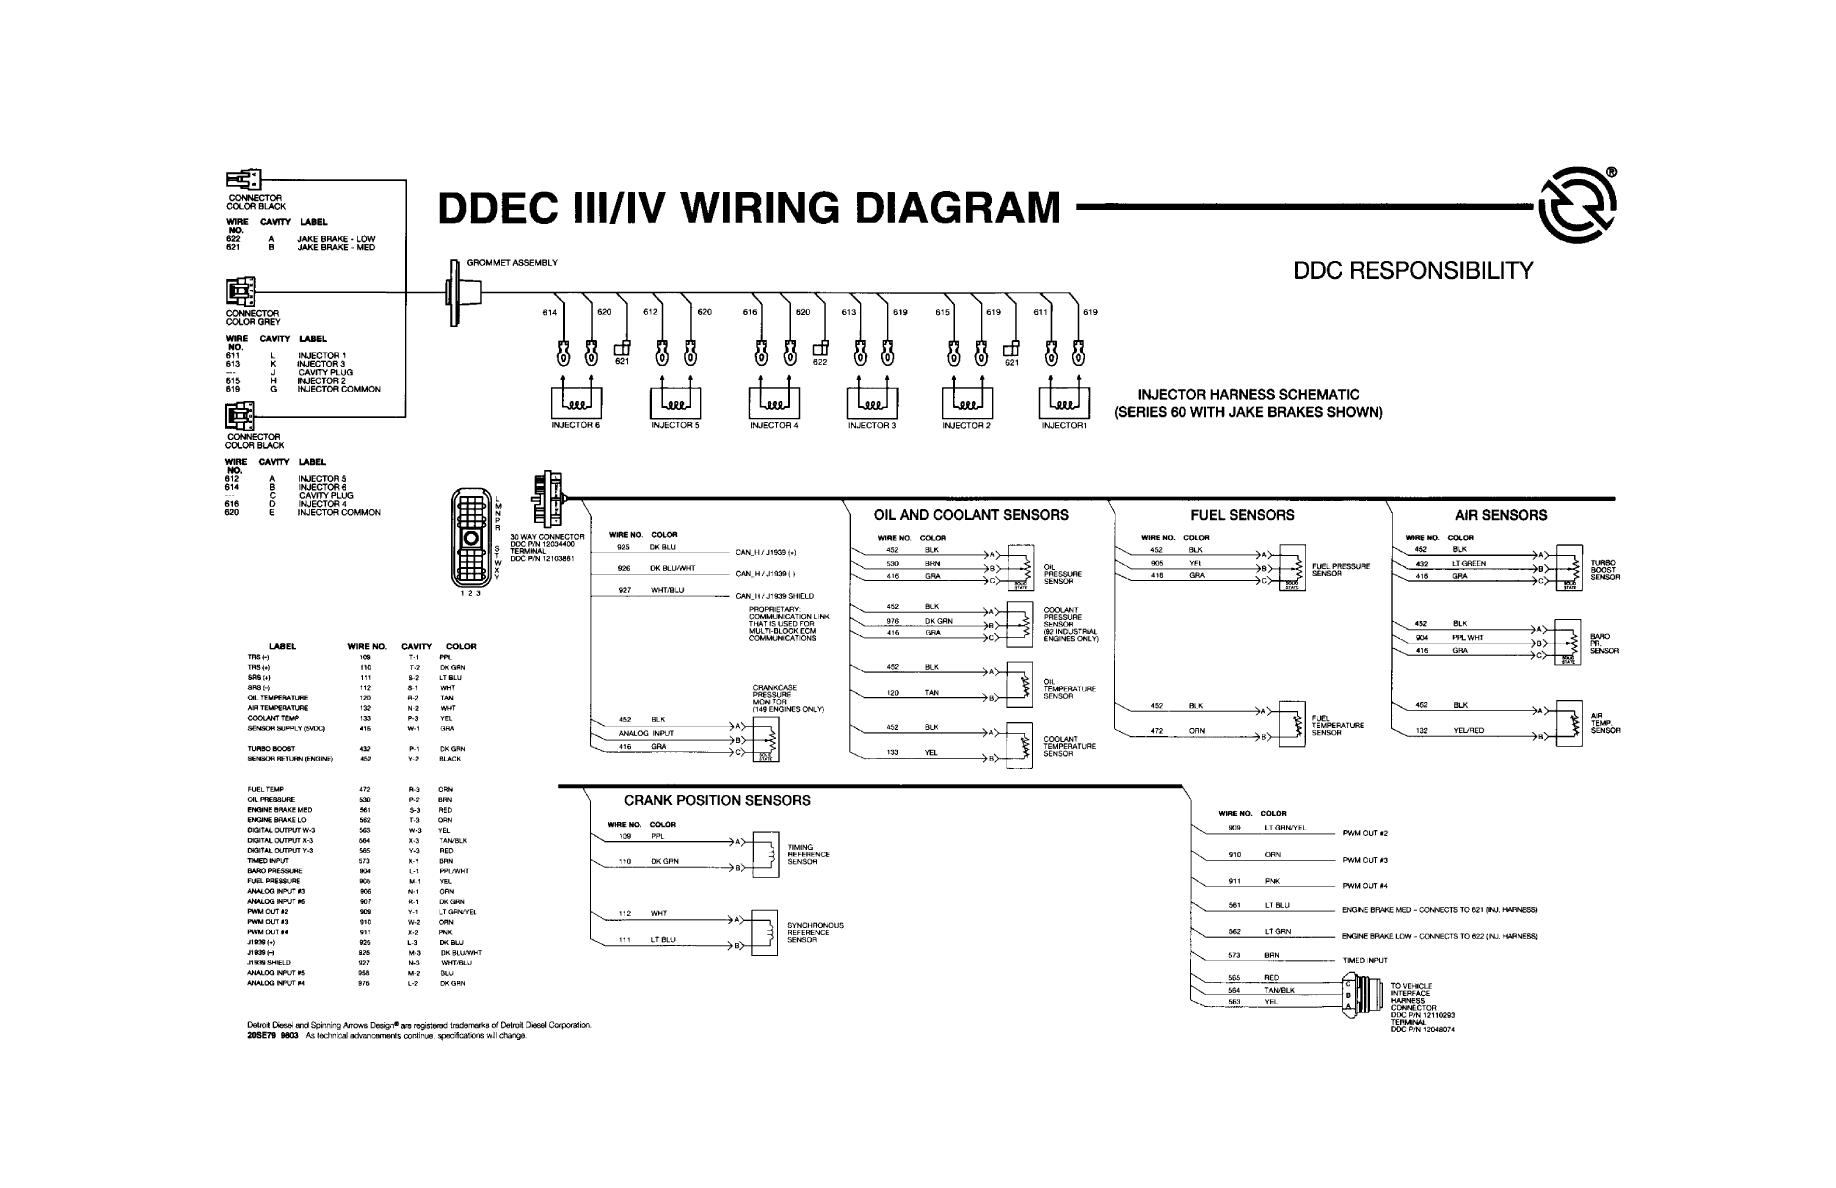 ddec ii wiring diagram fz 4453  wiring diagram in addition detroit diesel series 60 ecm  wiring diagram in addition detroit